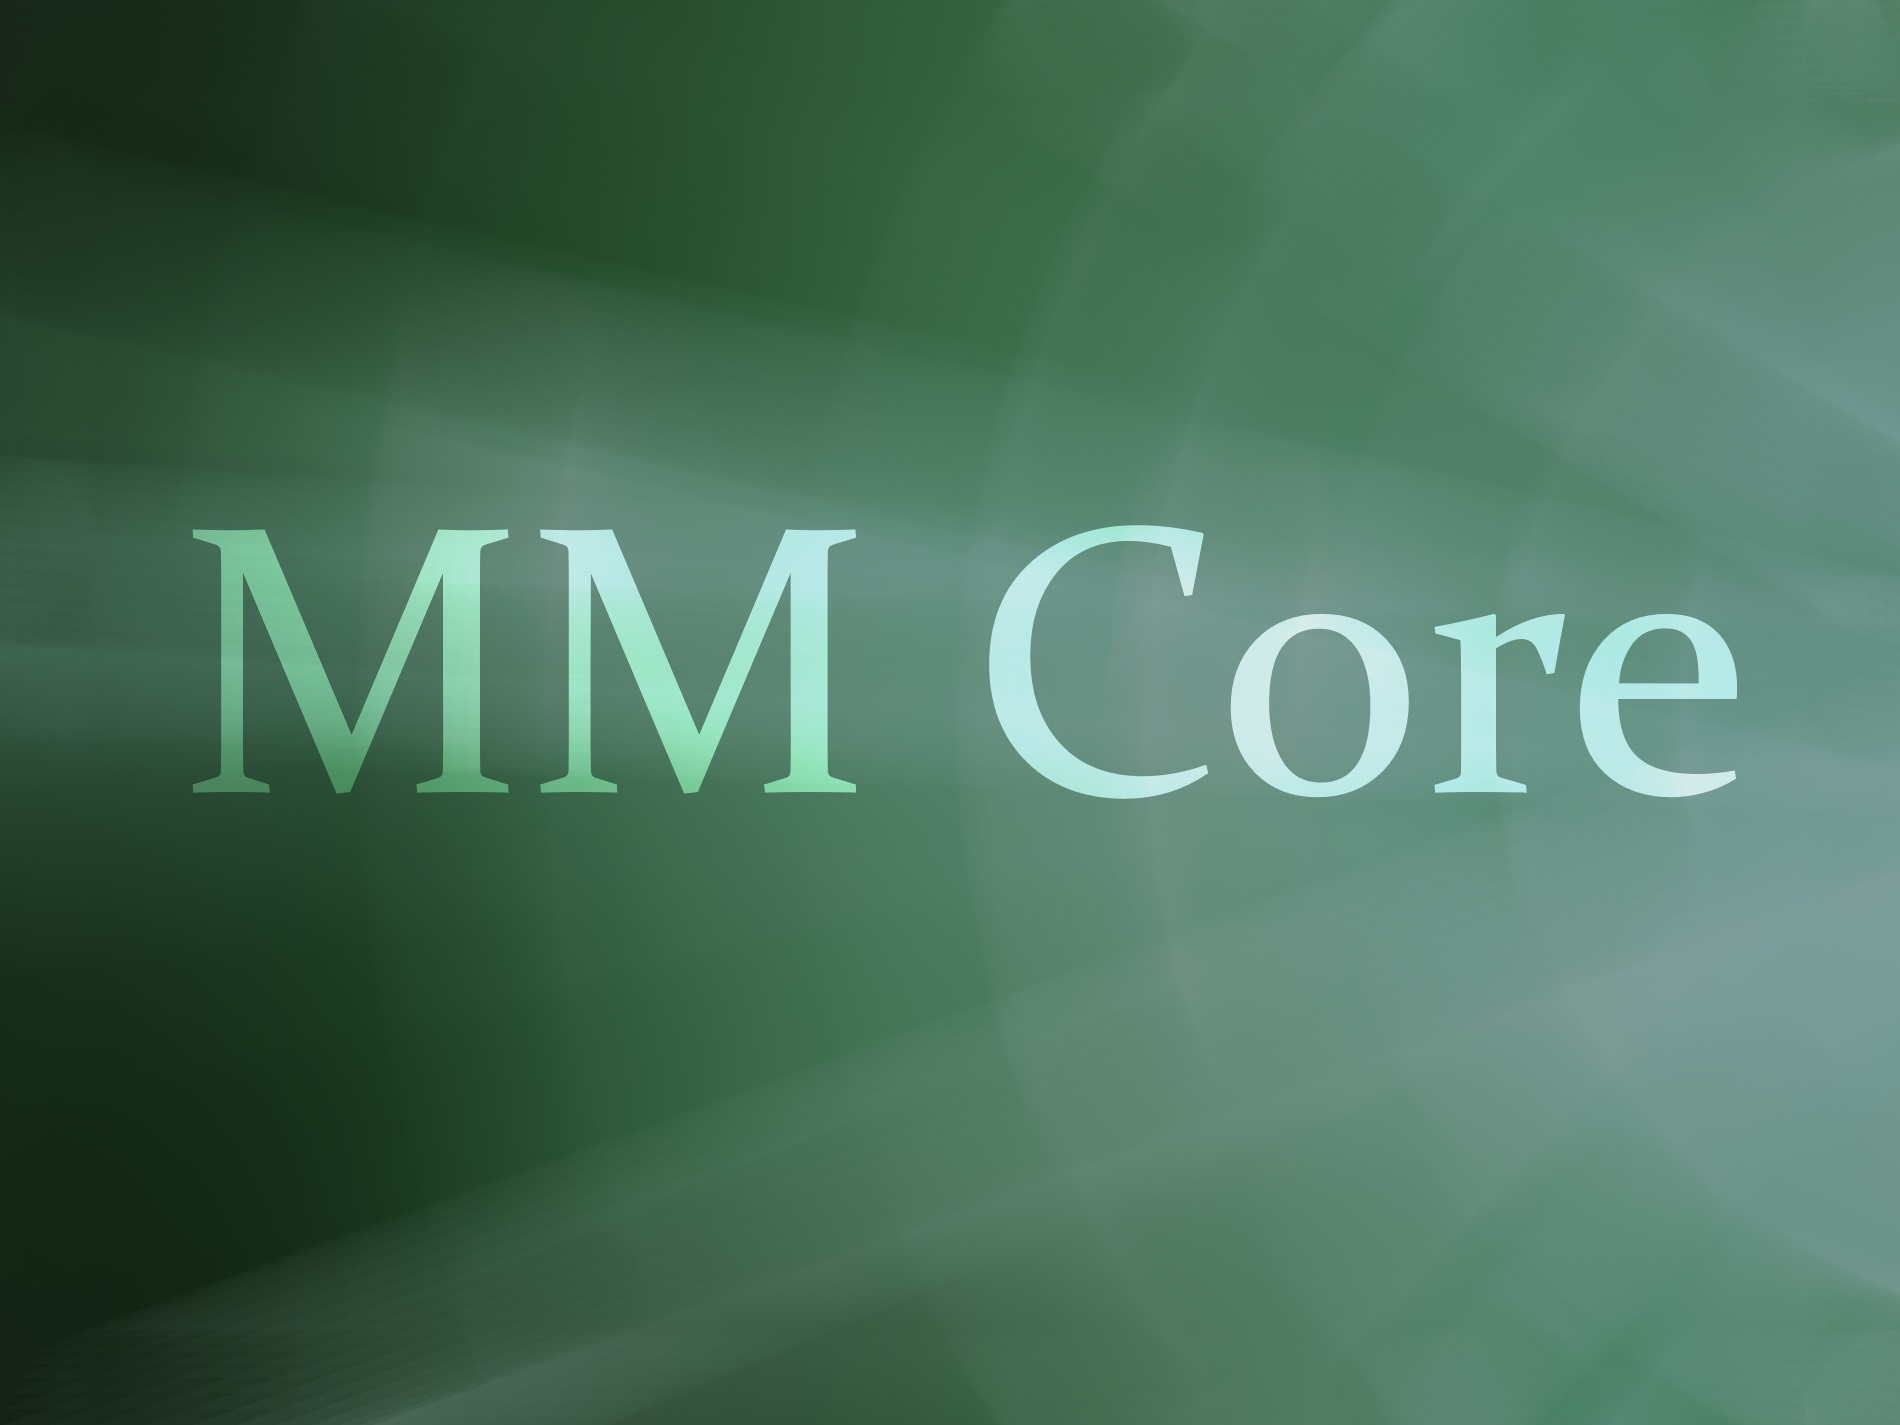 New MM Core APT Malware Strains Discovered